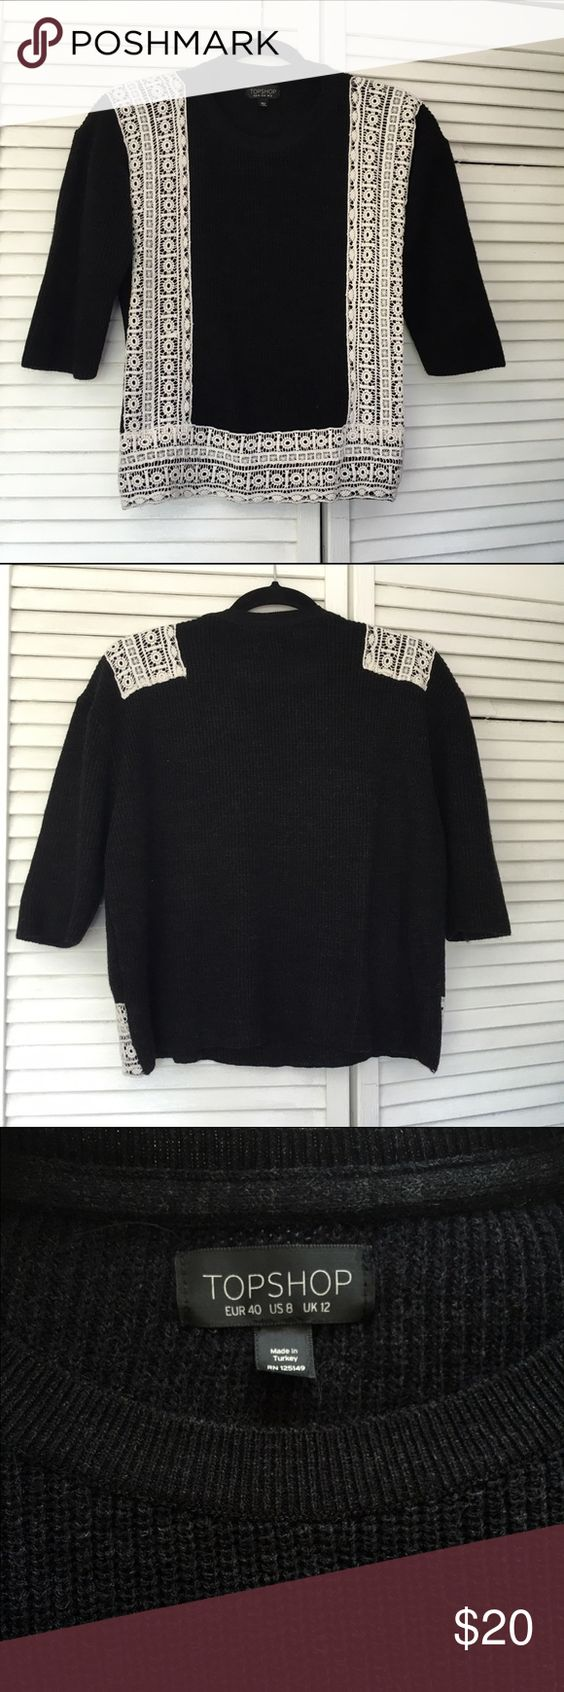 Topshop Knit Top Adorable black colored half sleeved sweater with beige lace accents  Size 8 Never worn! Topshop Tops Tees - Long Sleeve